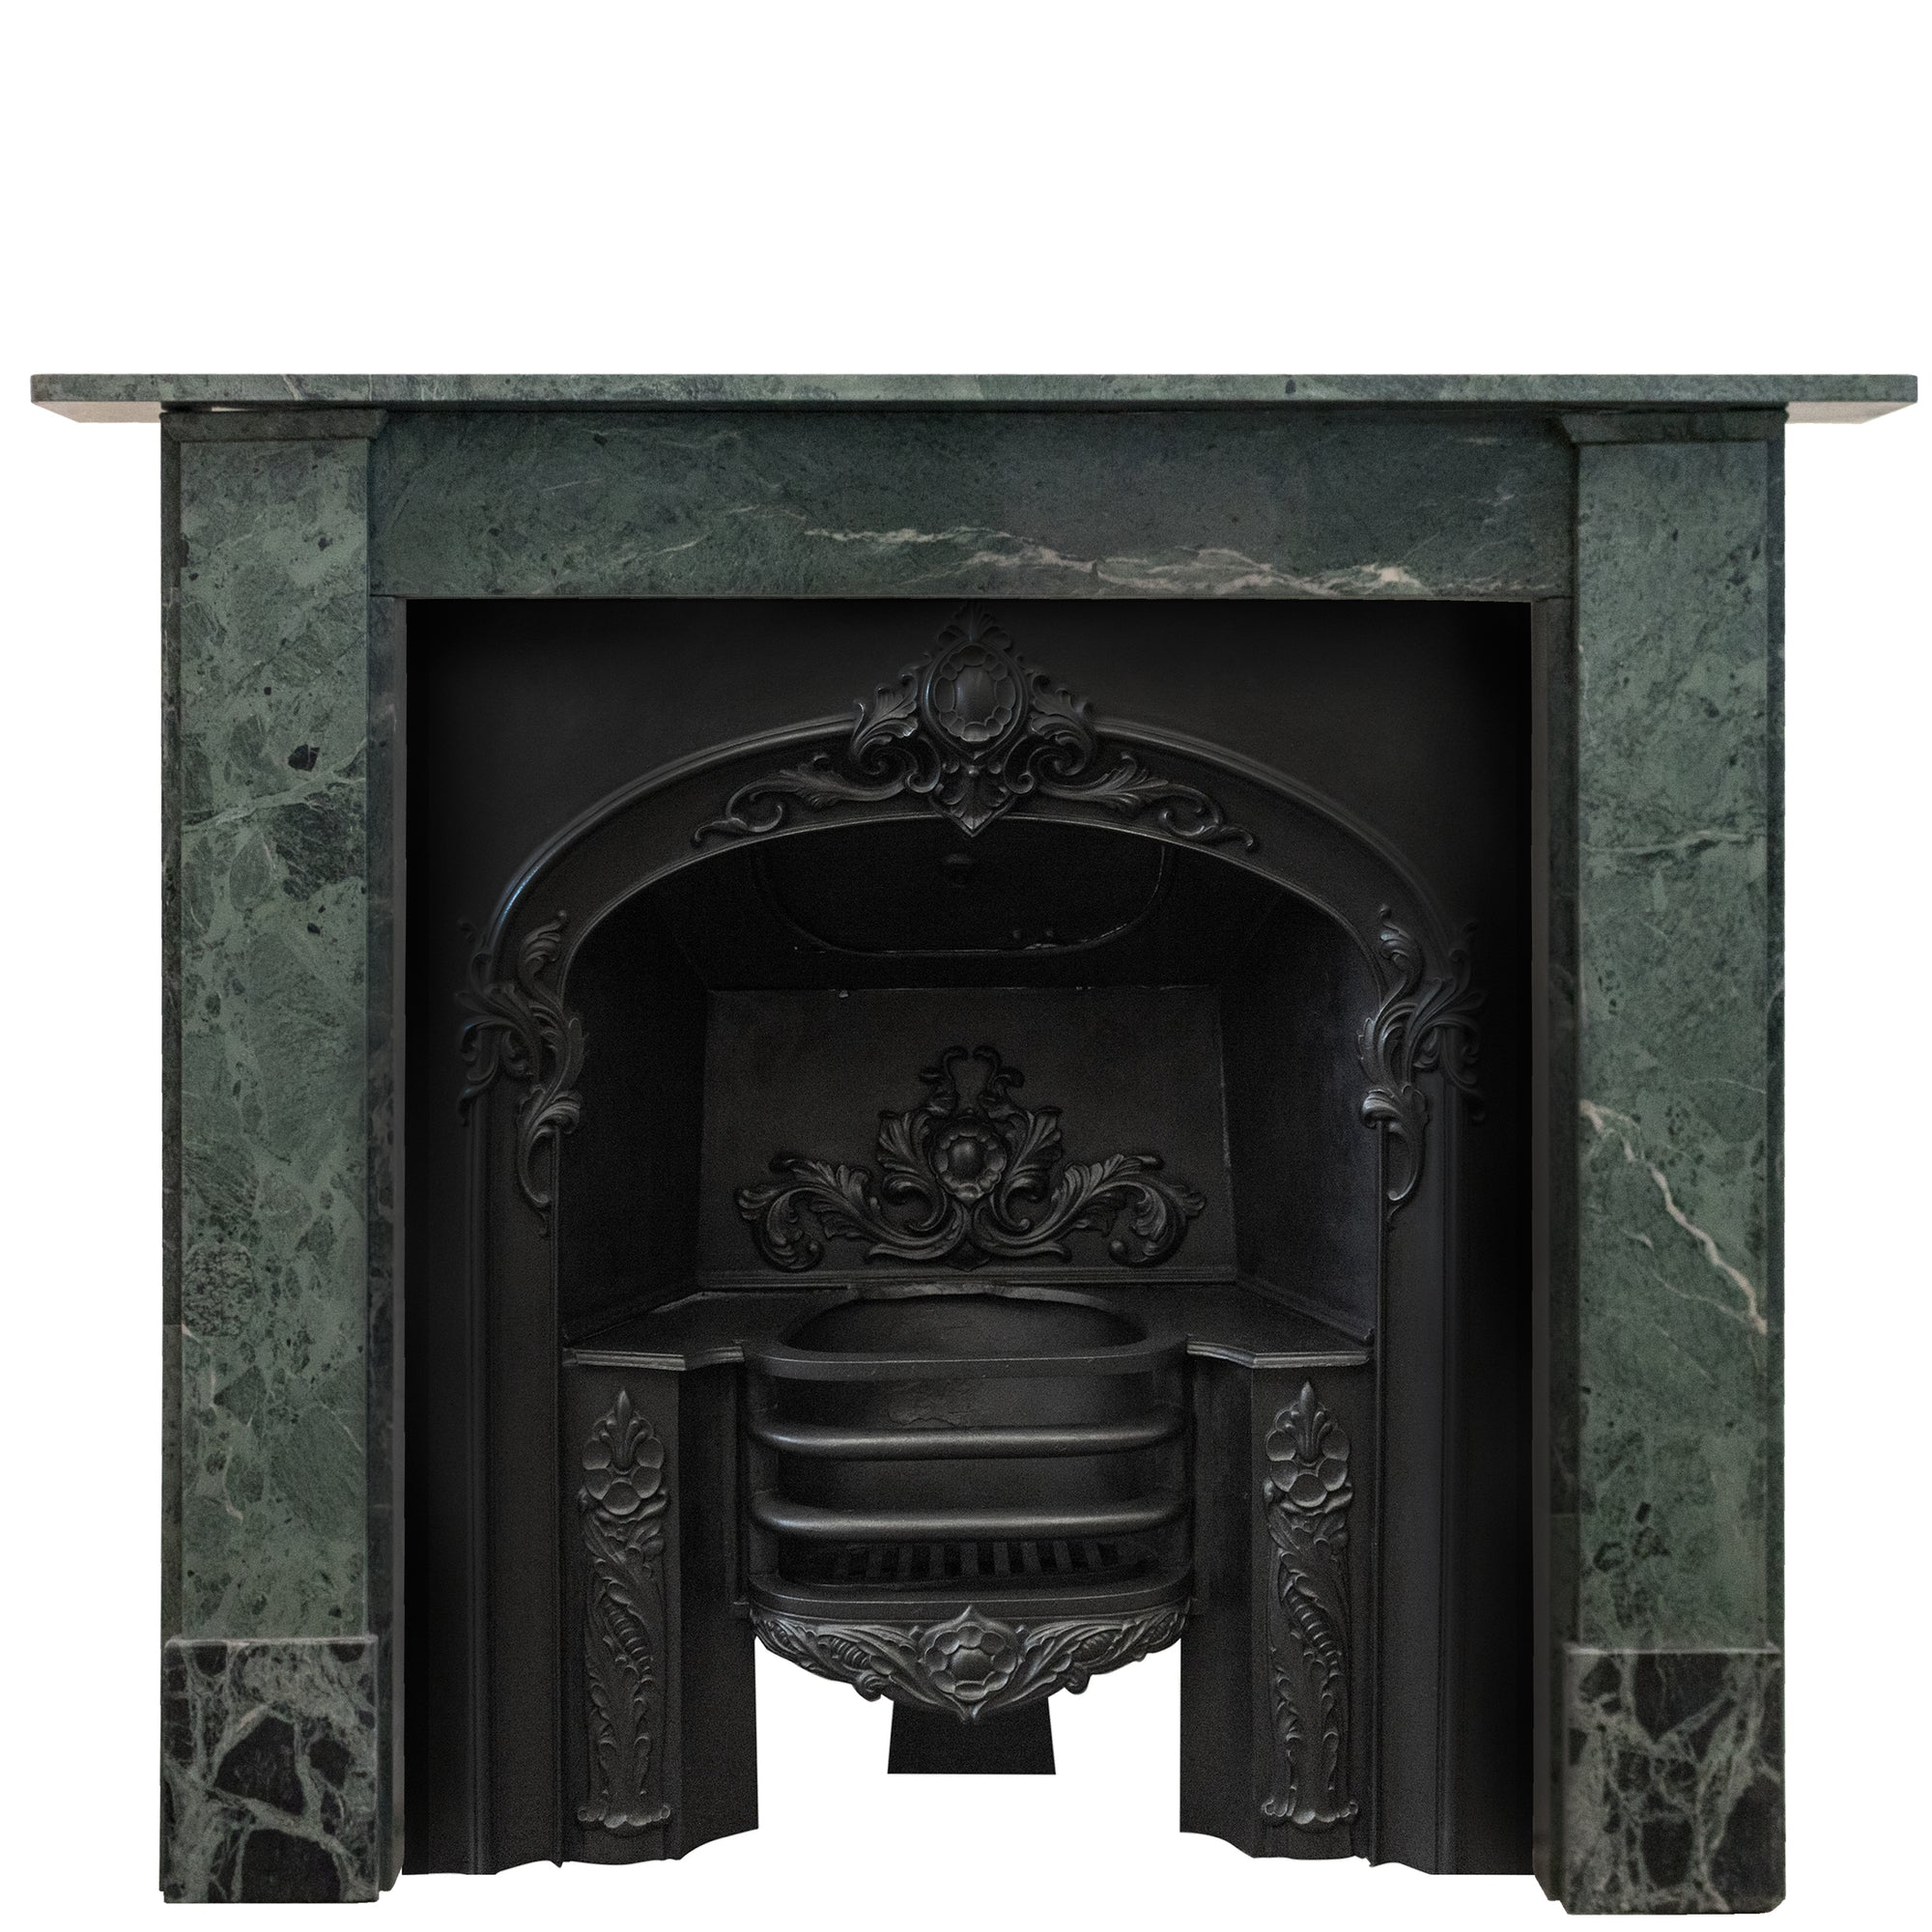 Georgian Style Verde Antico, Green Marble Chimneypiece